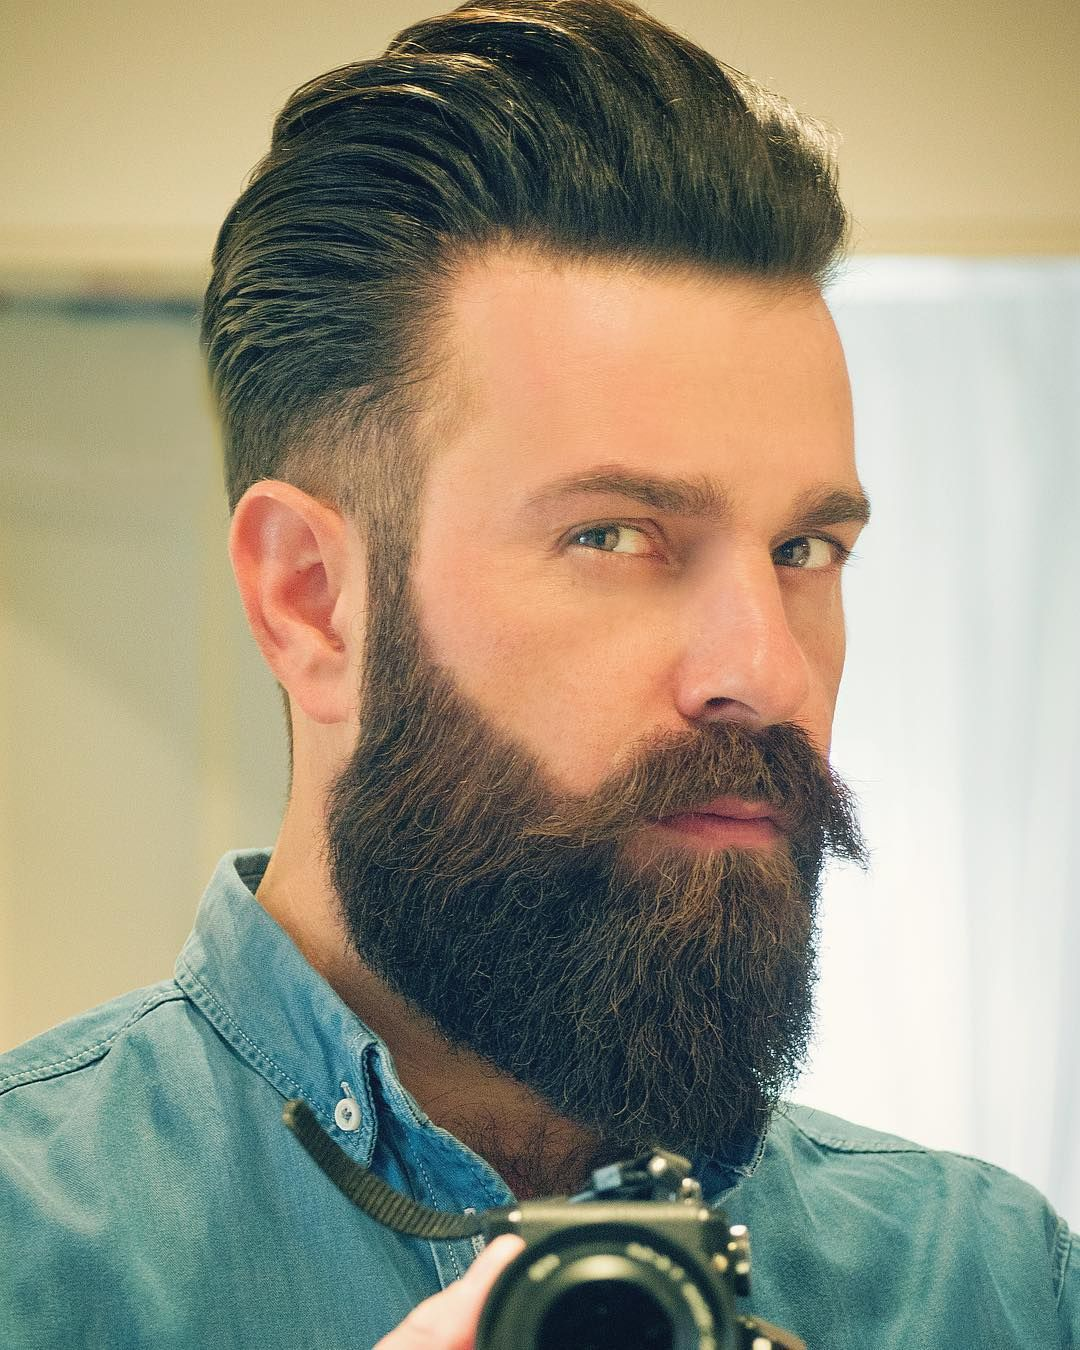 Top 20 Nice Full Beard Styles for Men Join Beard Gang